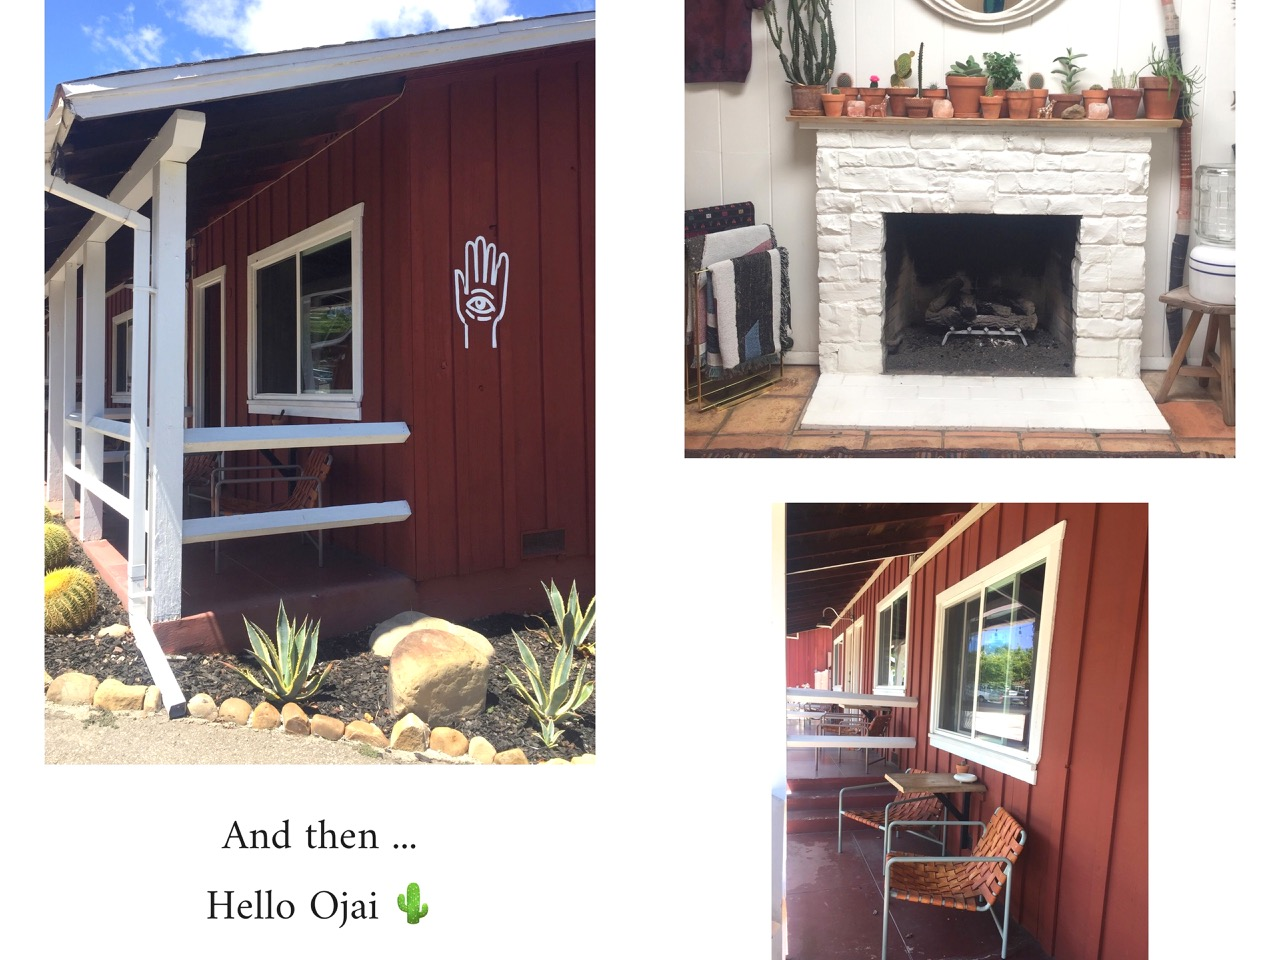 malibu,the surfrider malibu,hotel,the malibu farm, restaurant,travel,voyage,travel guide,ojai,the ojai rancho inn